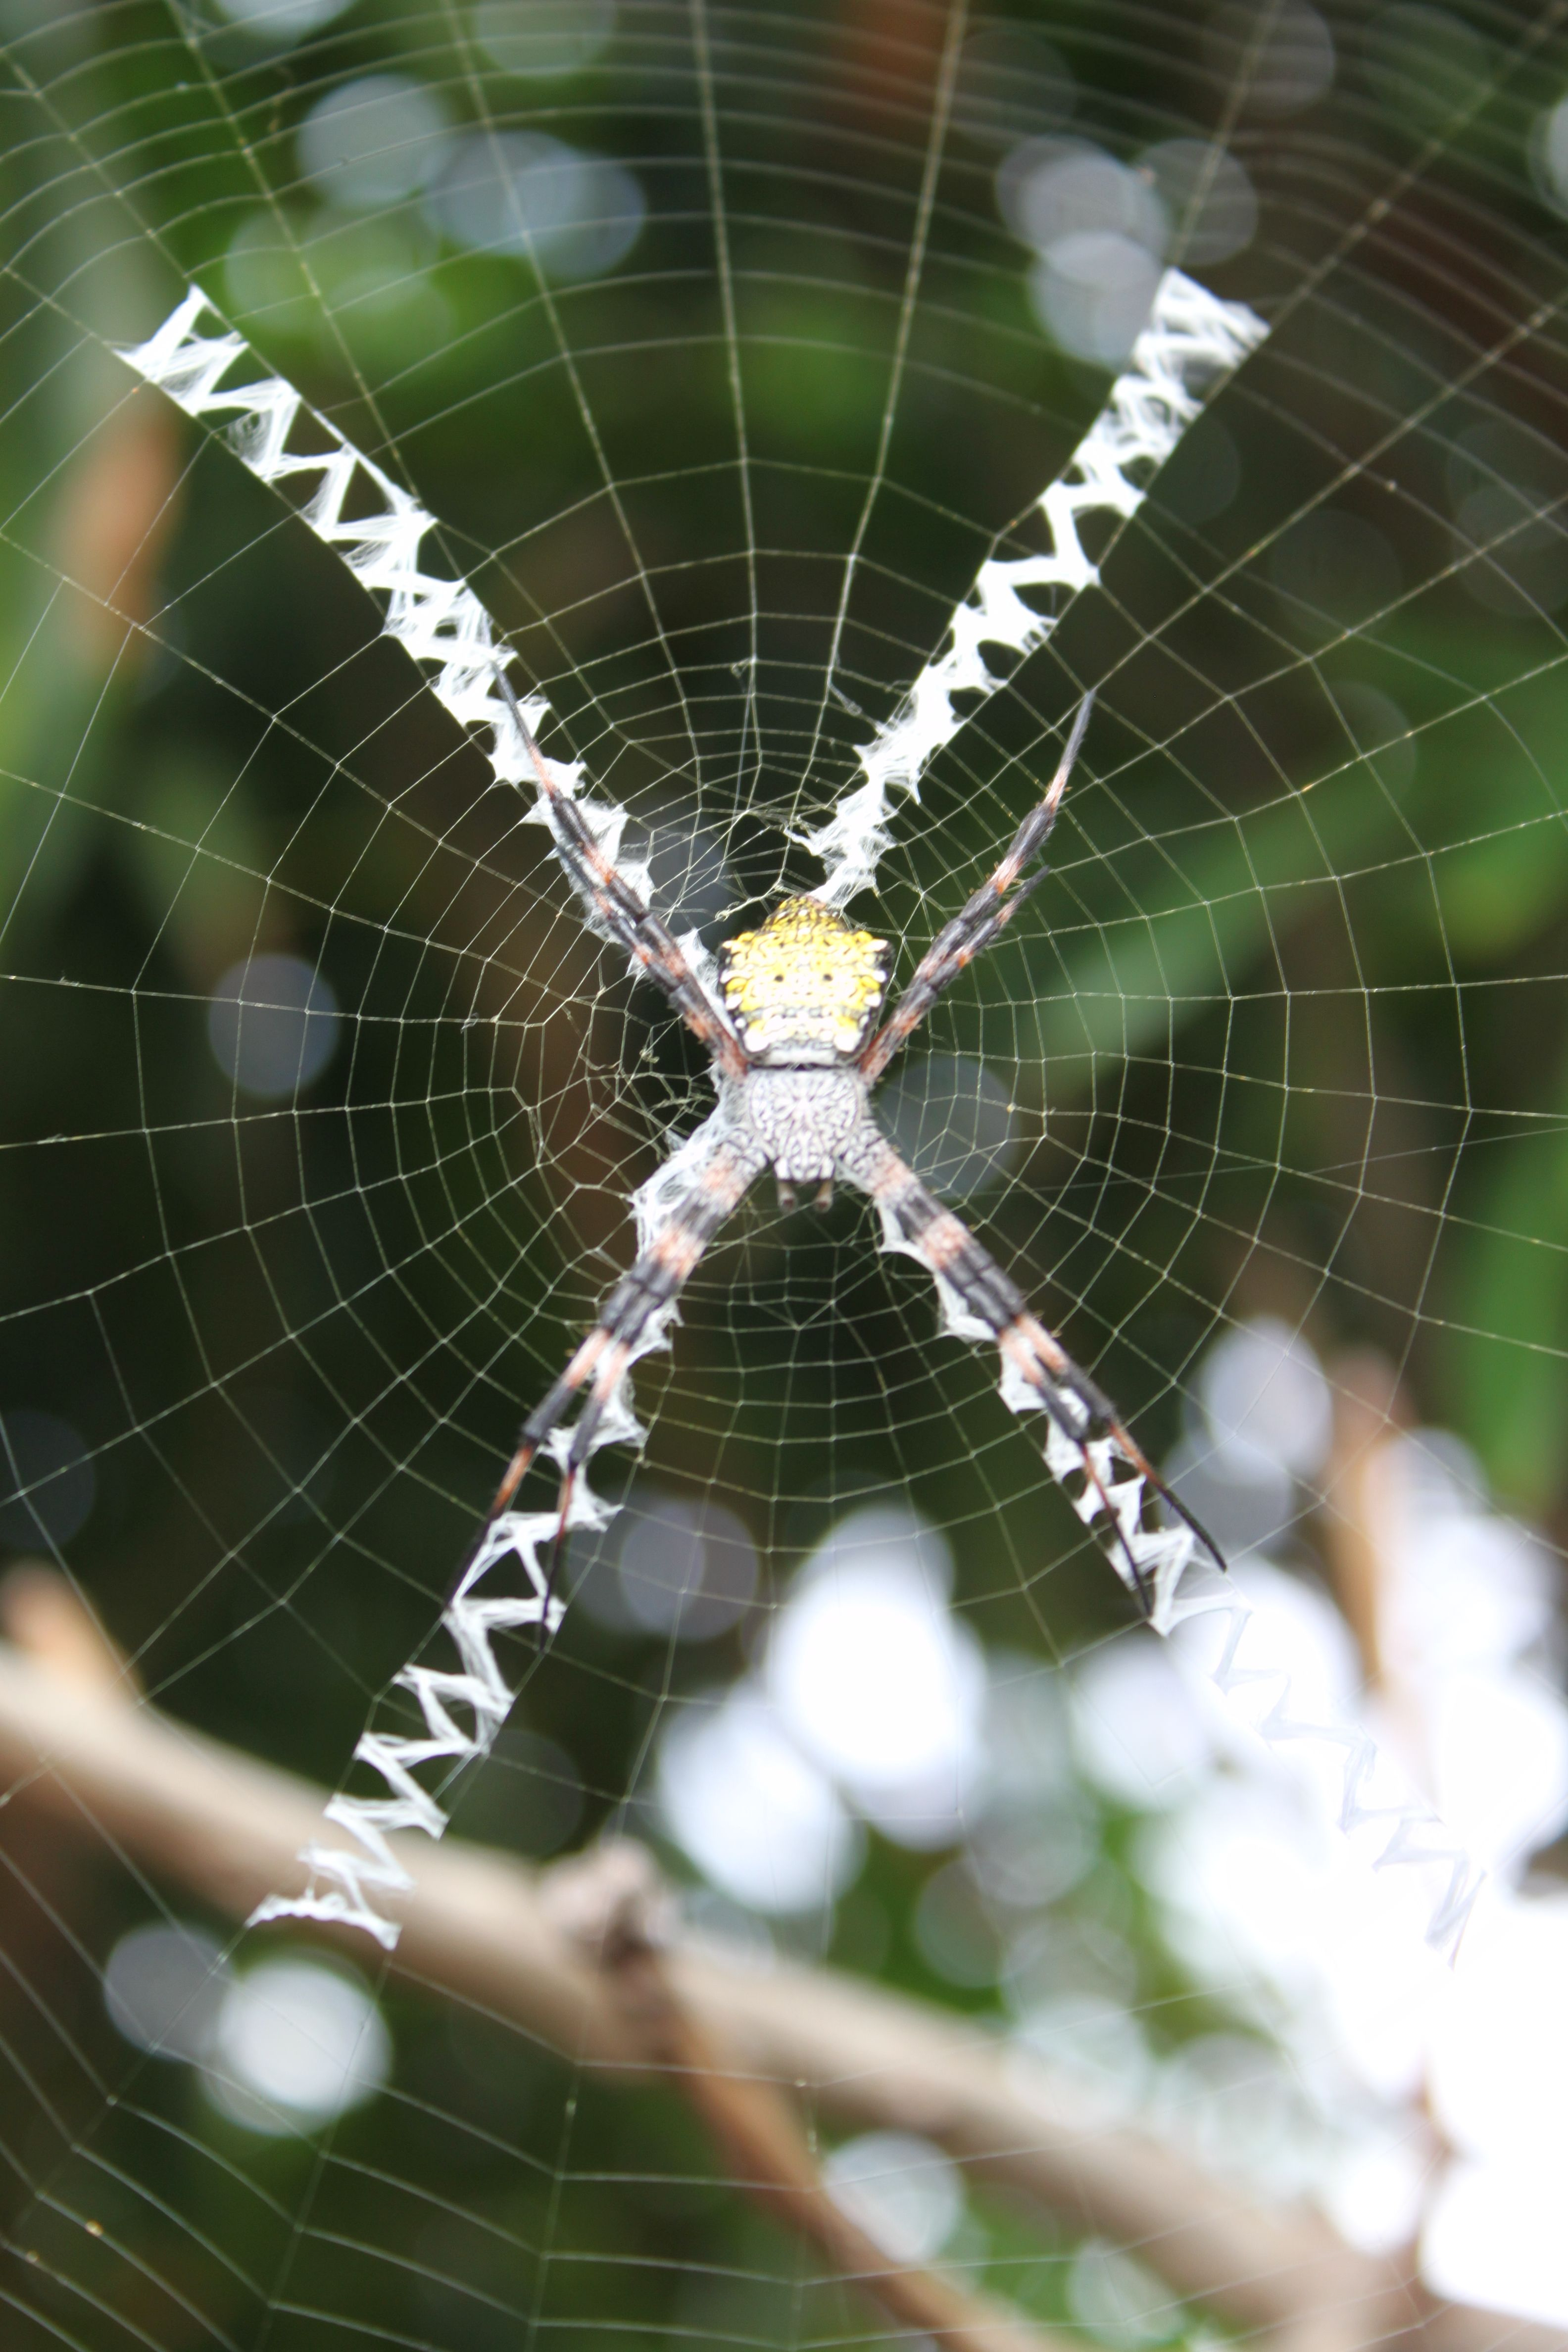 This Sugar Cane Spider Makes A Web To Hide In